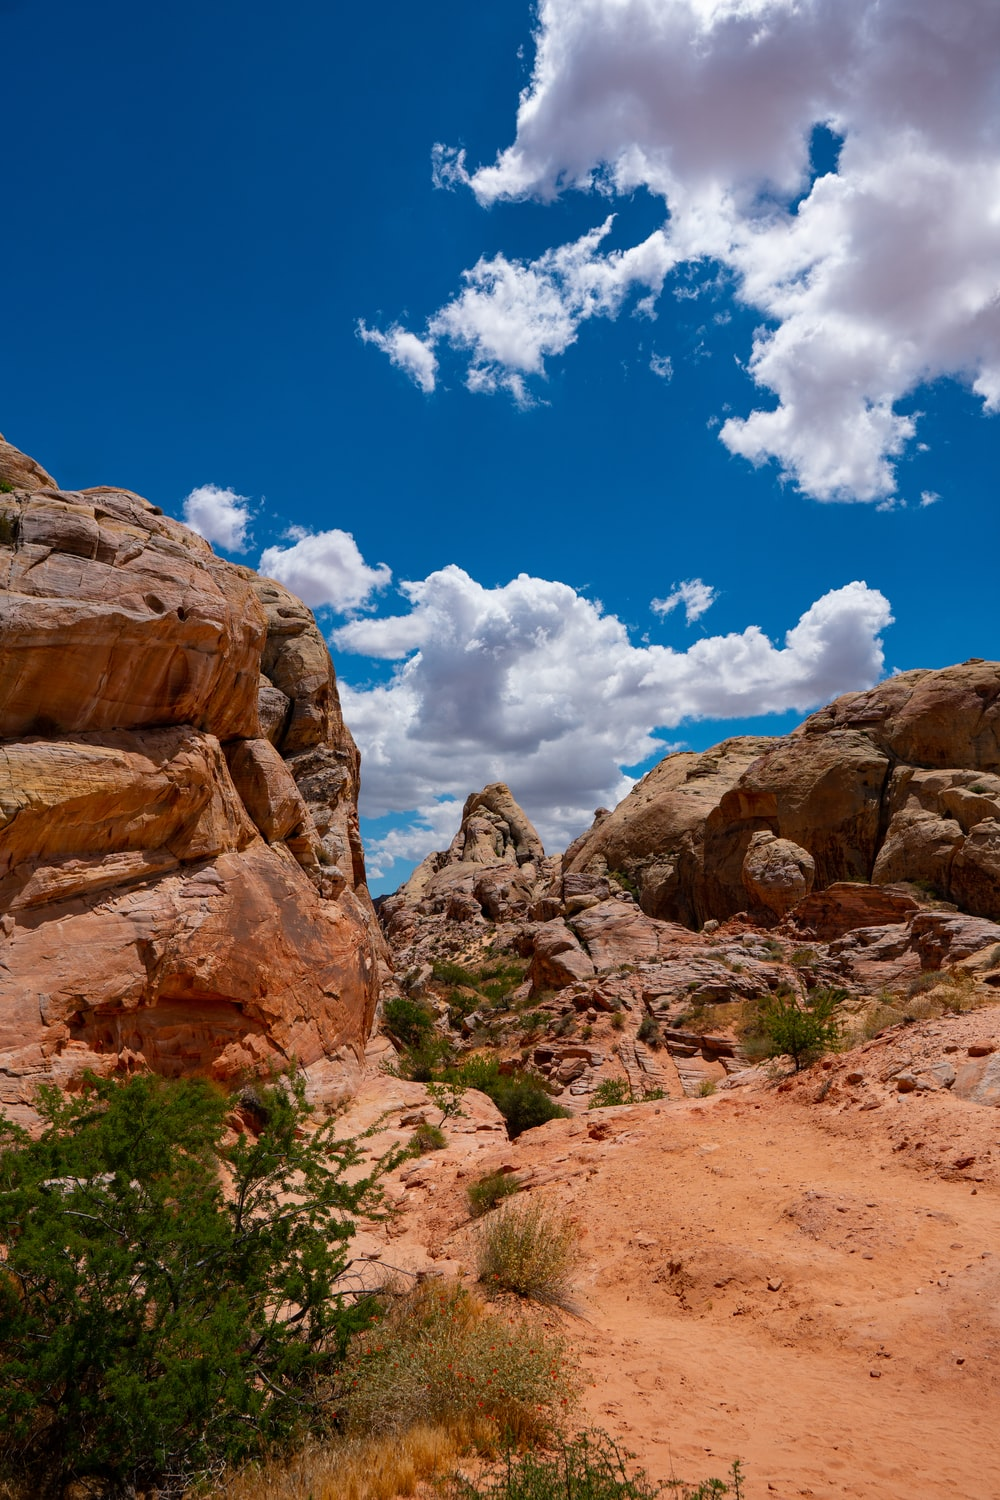 brown rock formations under white and blue skies